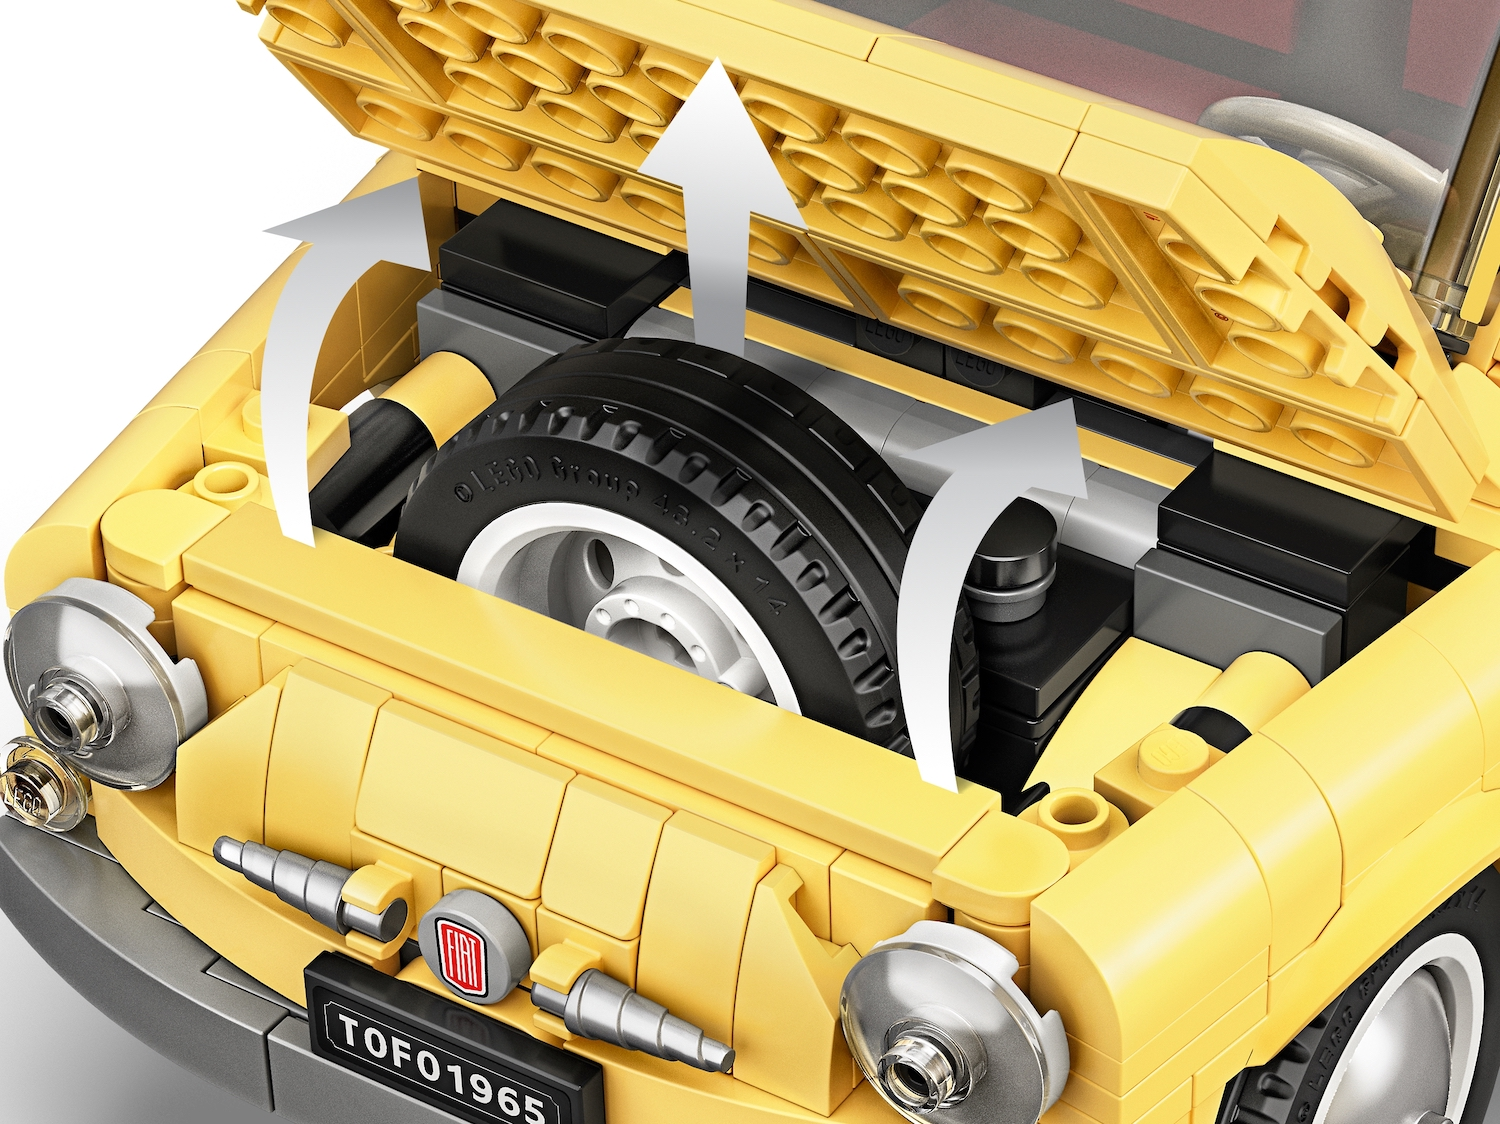 lego fiat 500 toy car spare tire